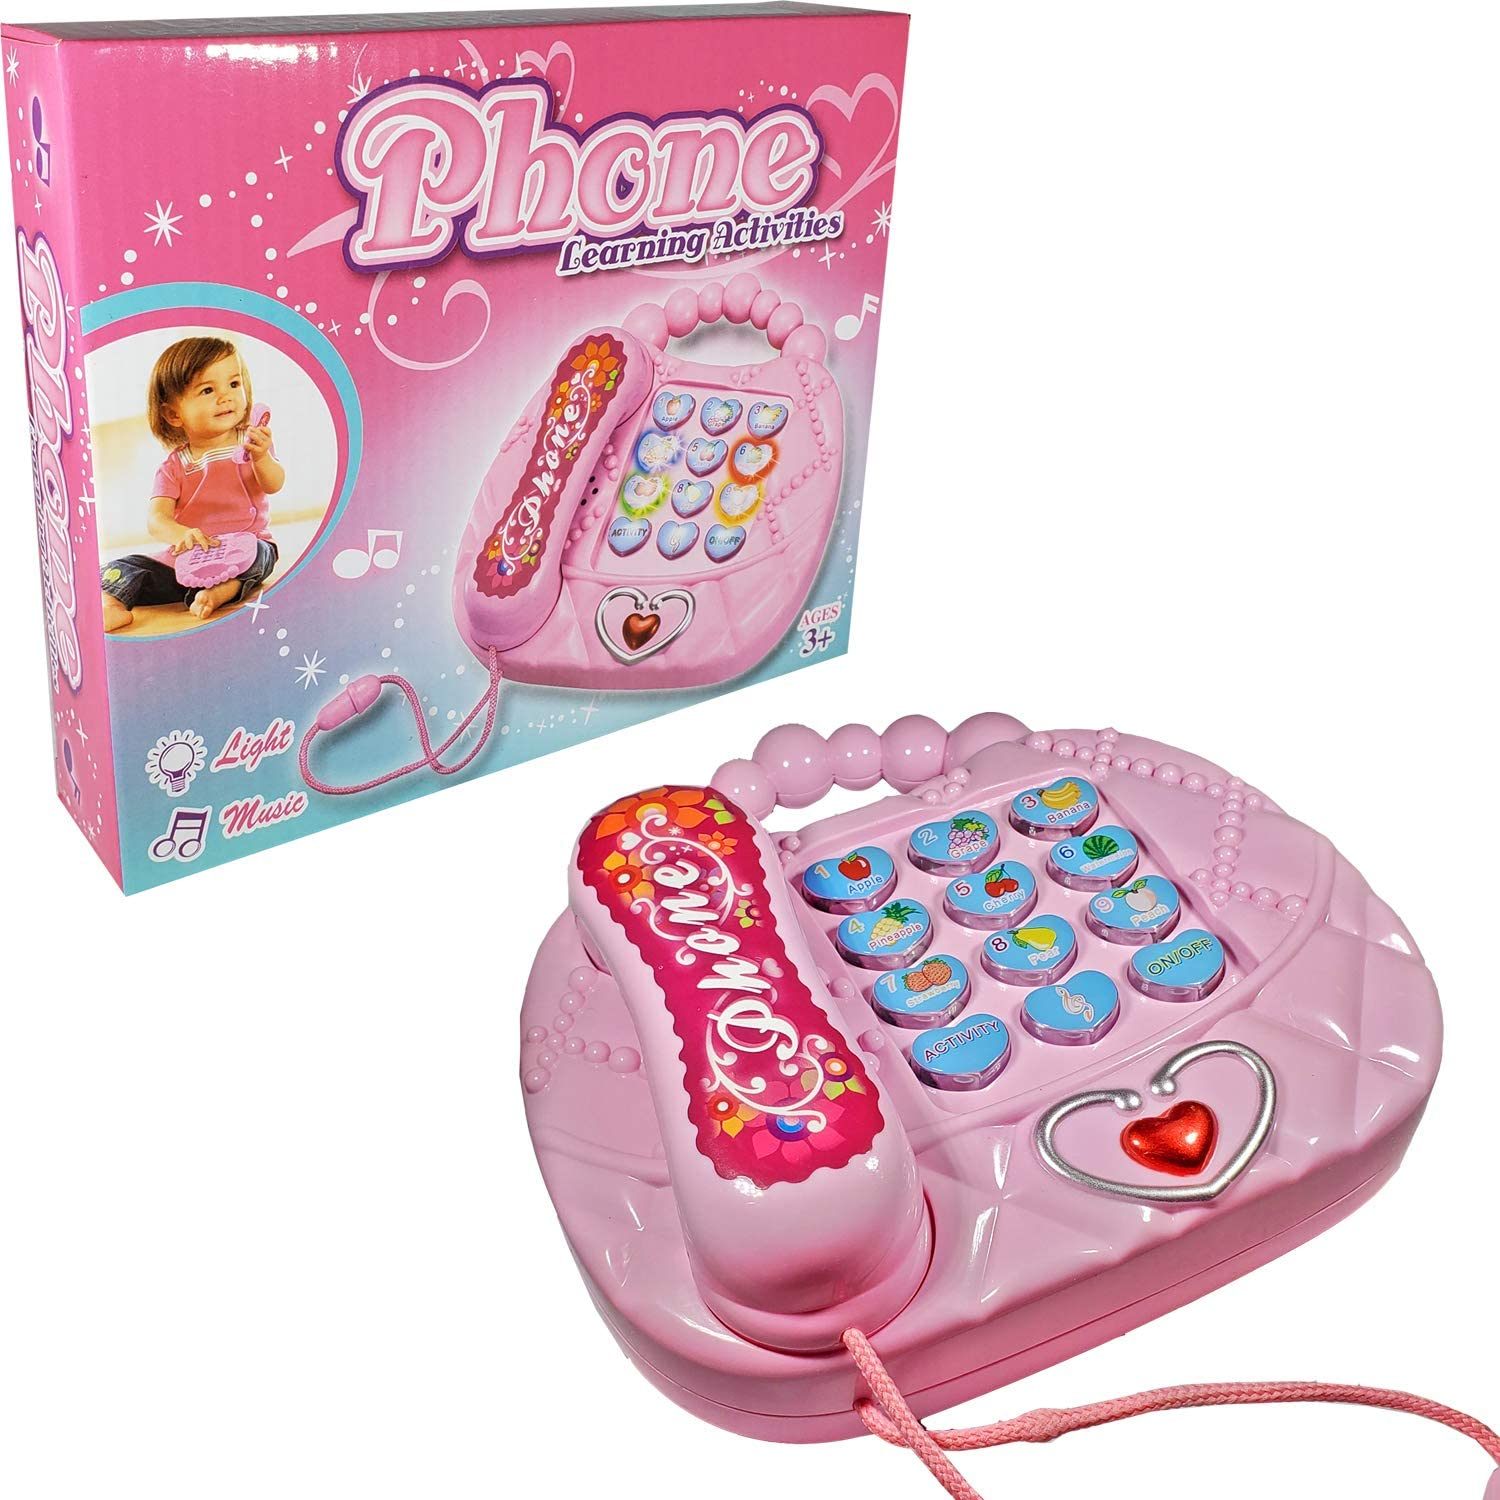 Lovely Toy Phones for Toddlers; 3 Activity Modes Play Phone; Kids Phone Playing Beautiful Lyrics ANJ Kids 2019 Holiday Toy